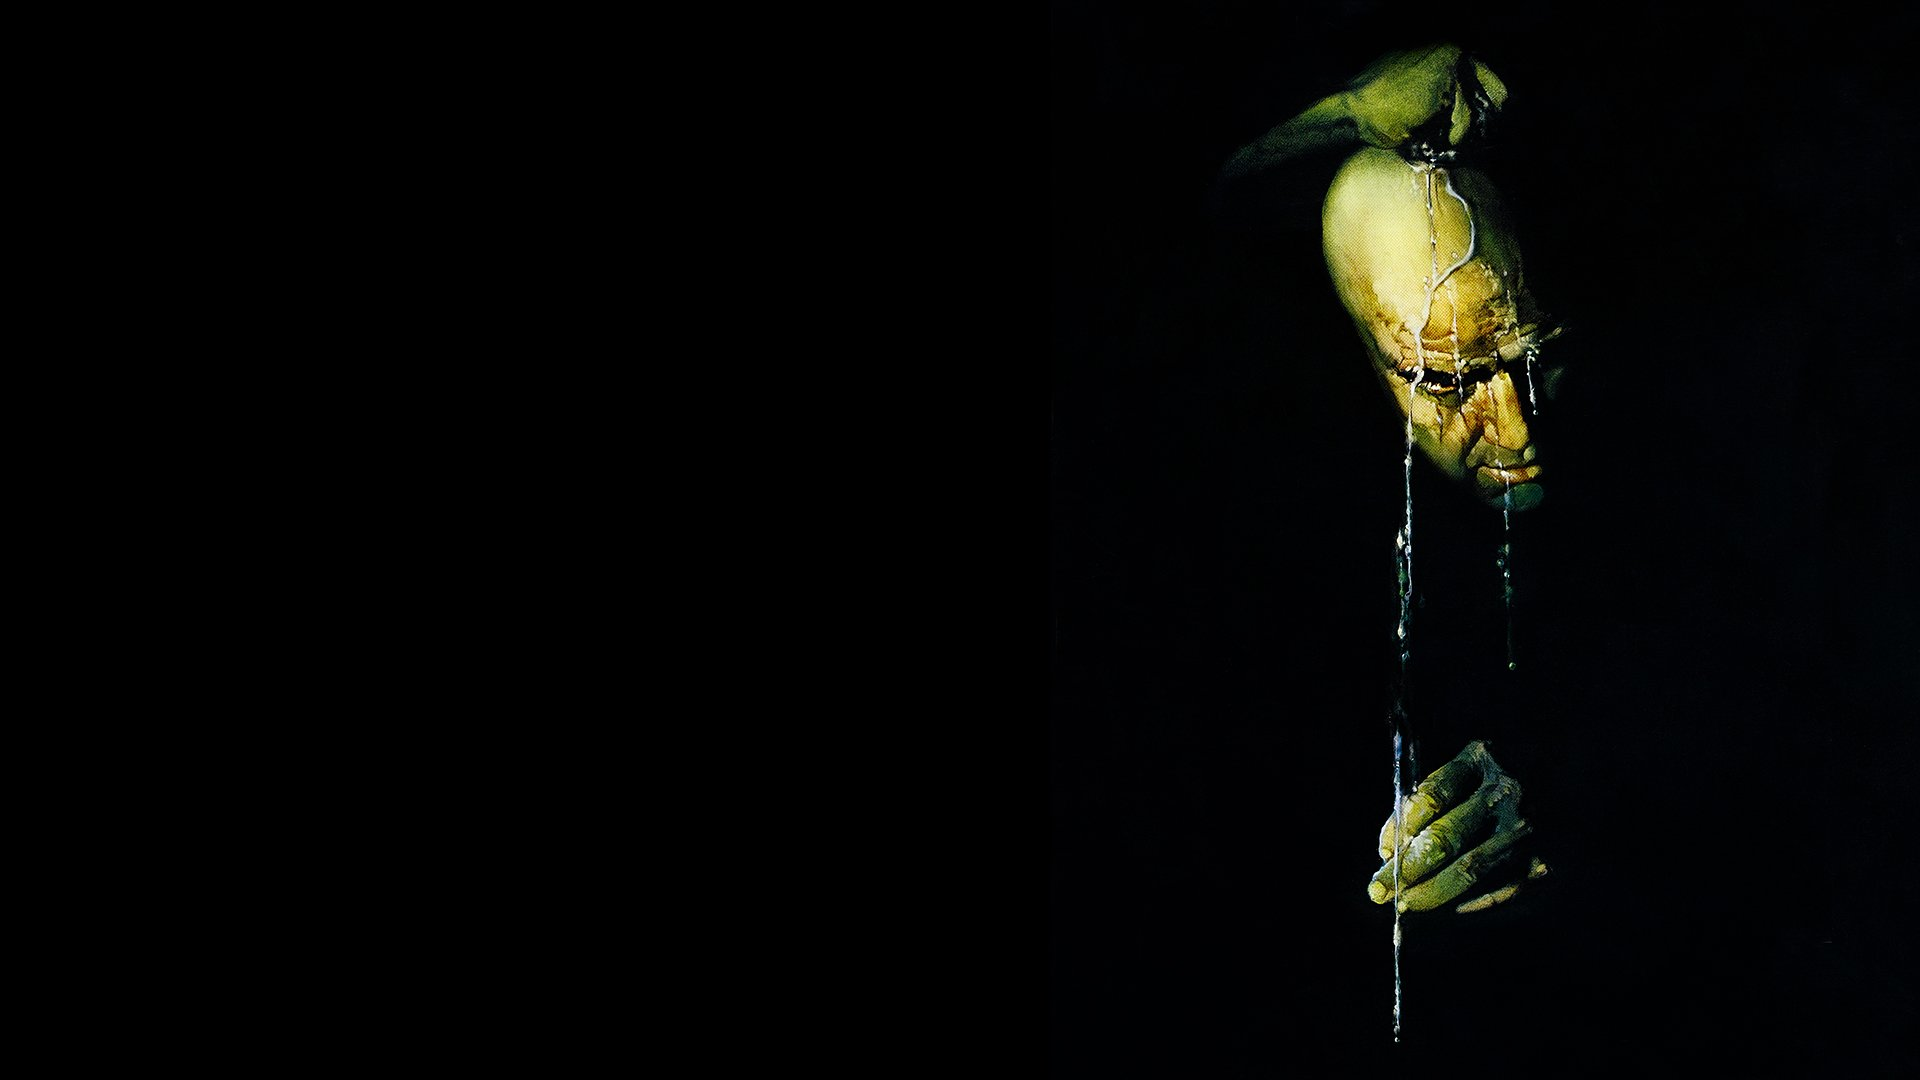 Films   Apocalypse Now Wallpaper 1920x1080